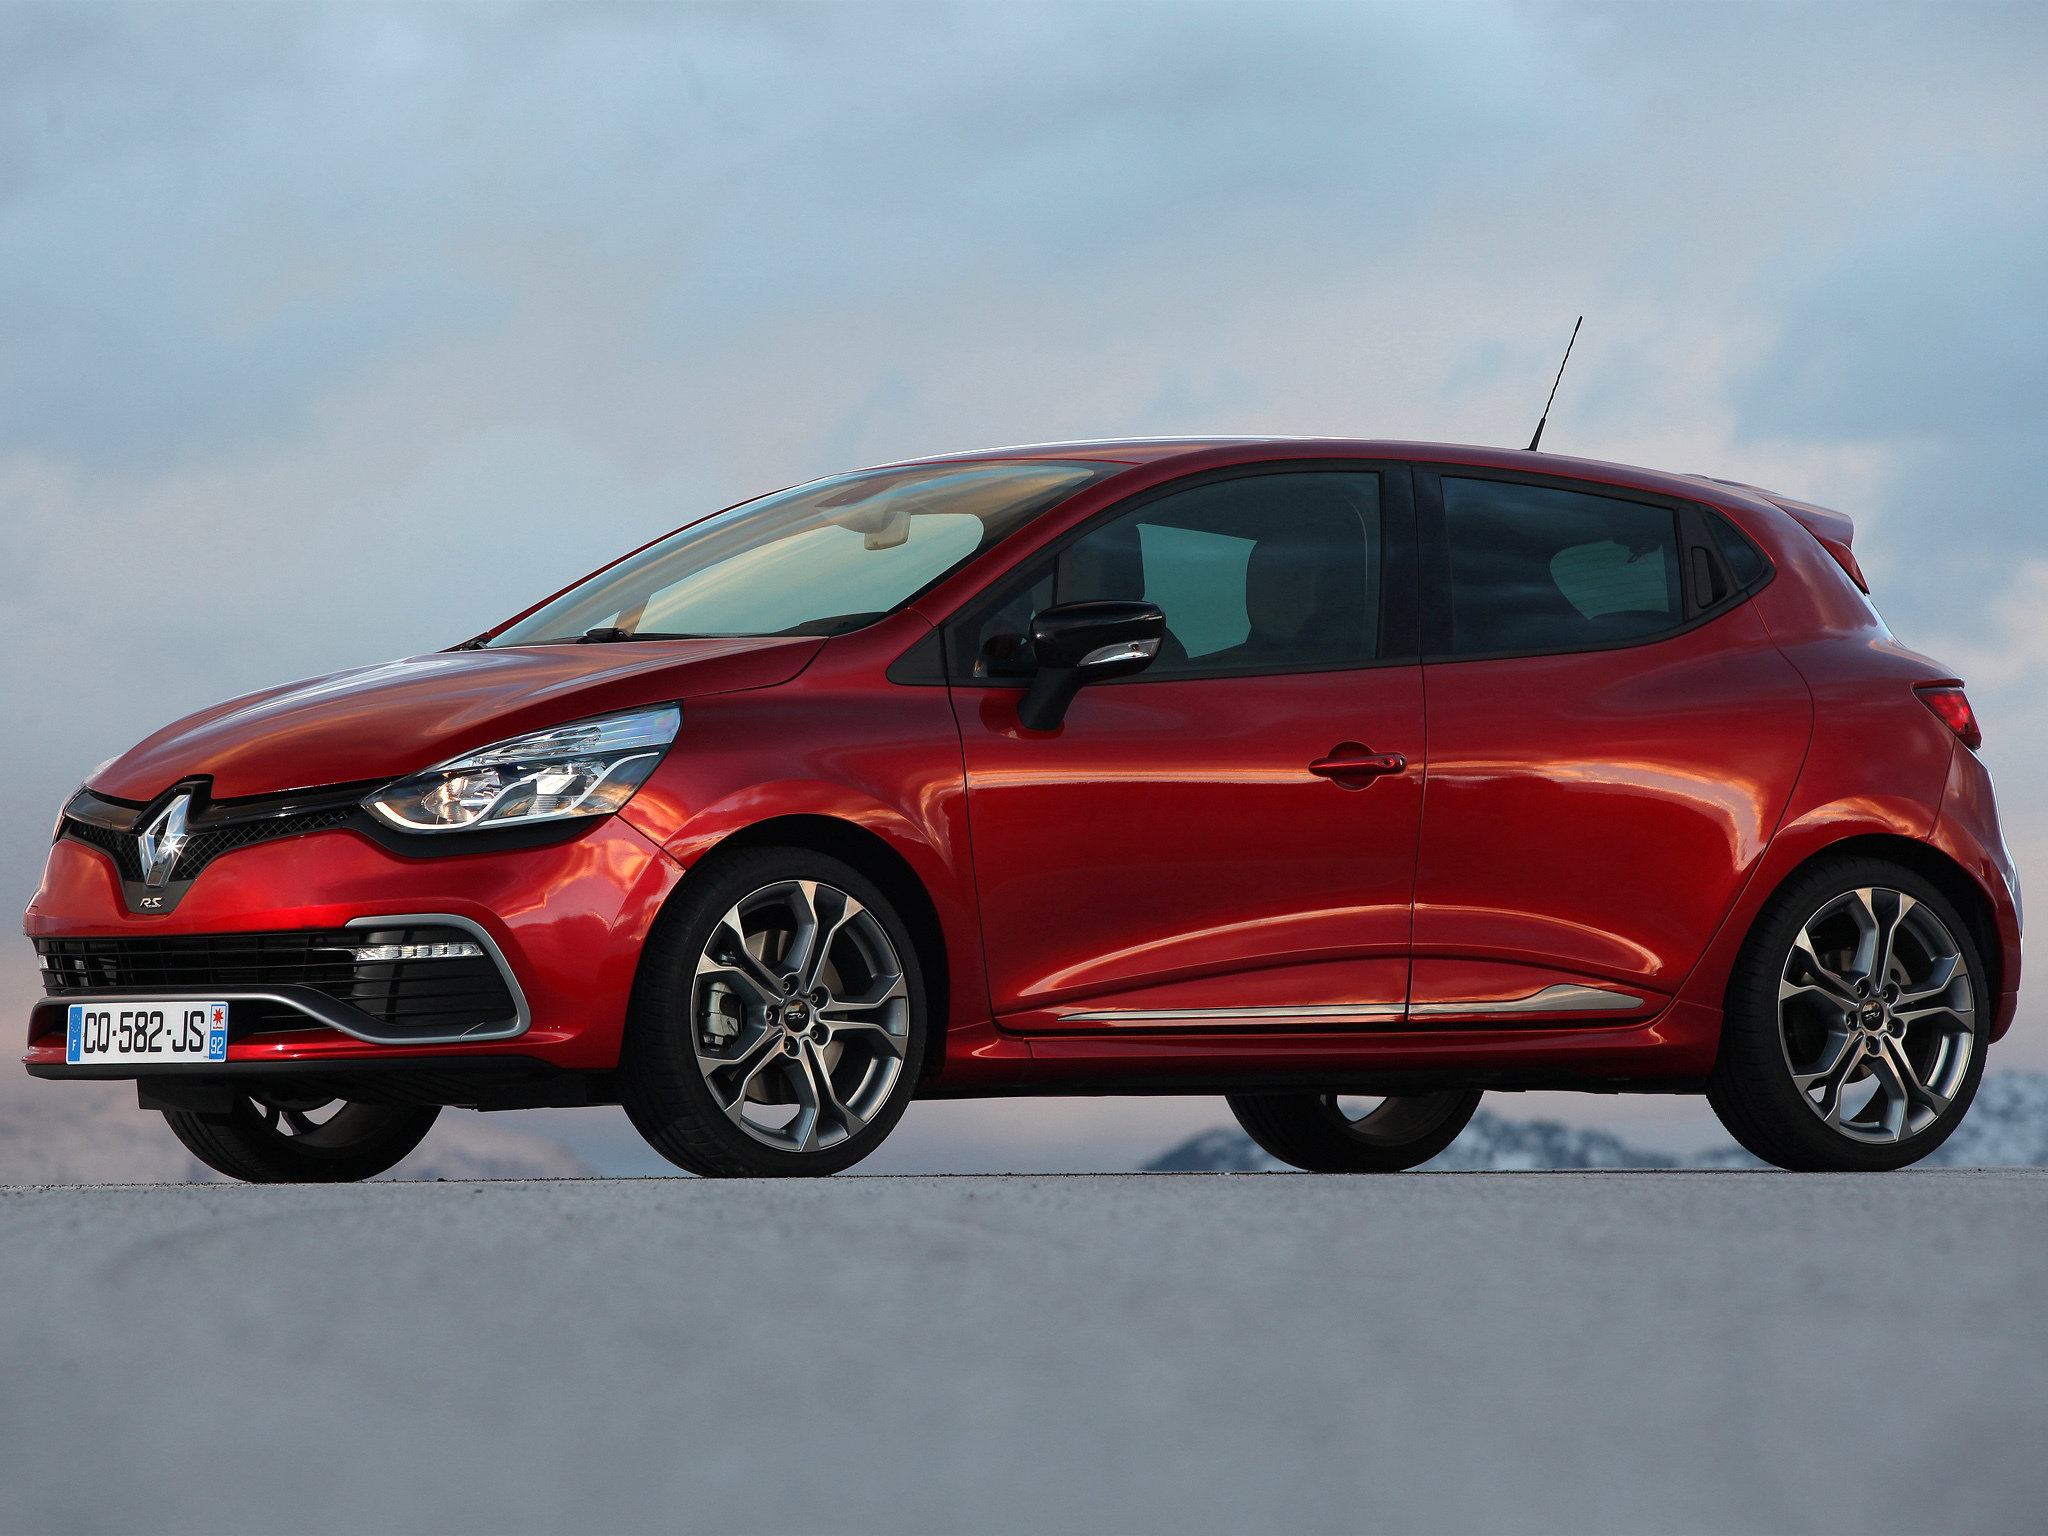 Awesome Renault Clio free wallpaper ID:250170 for hd 2048x1536 desktop